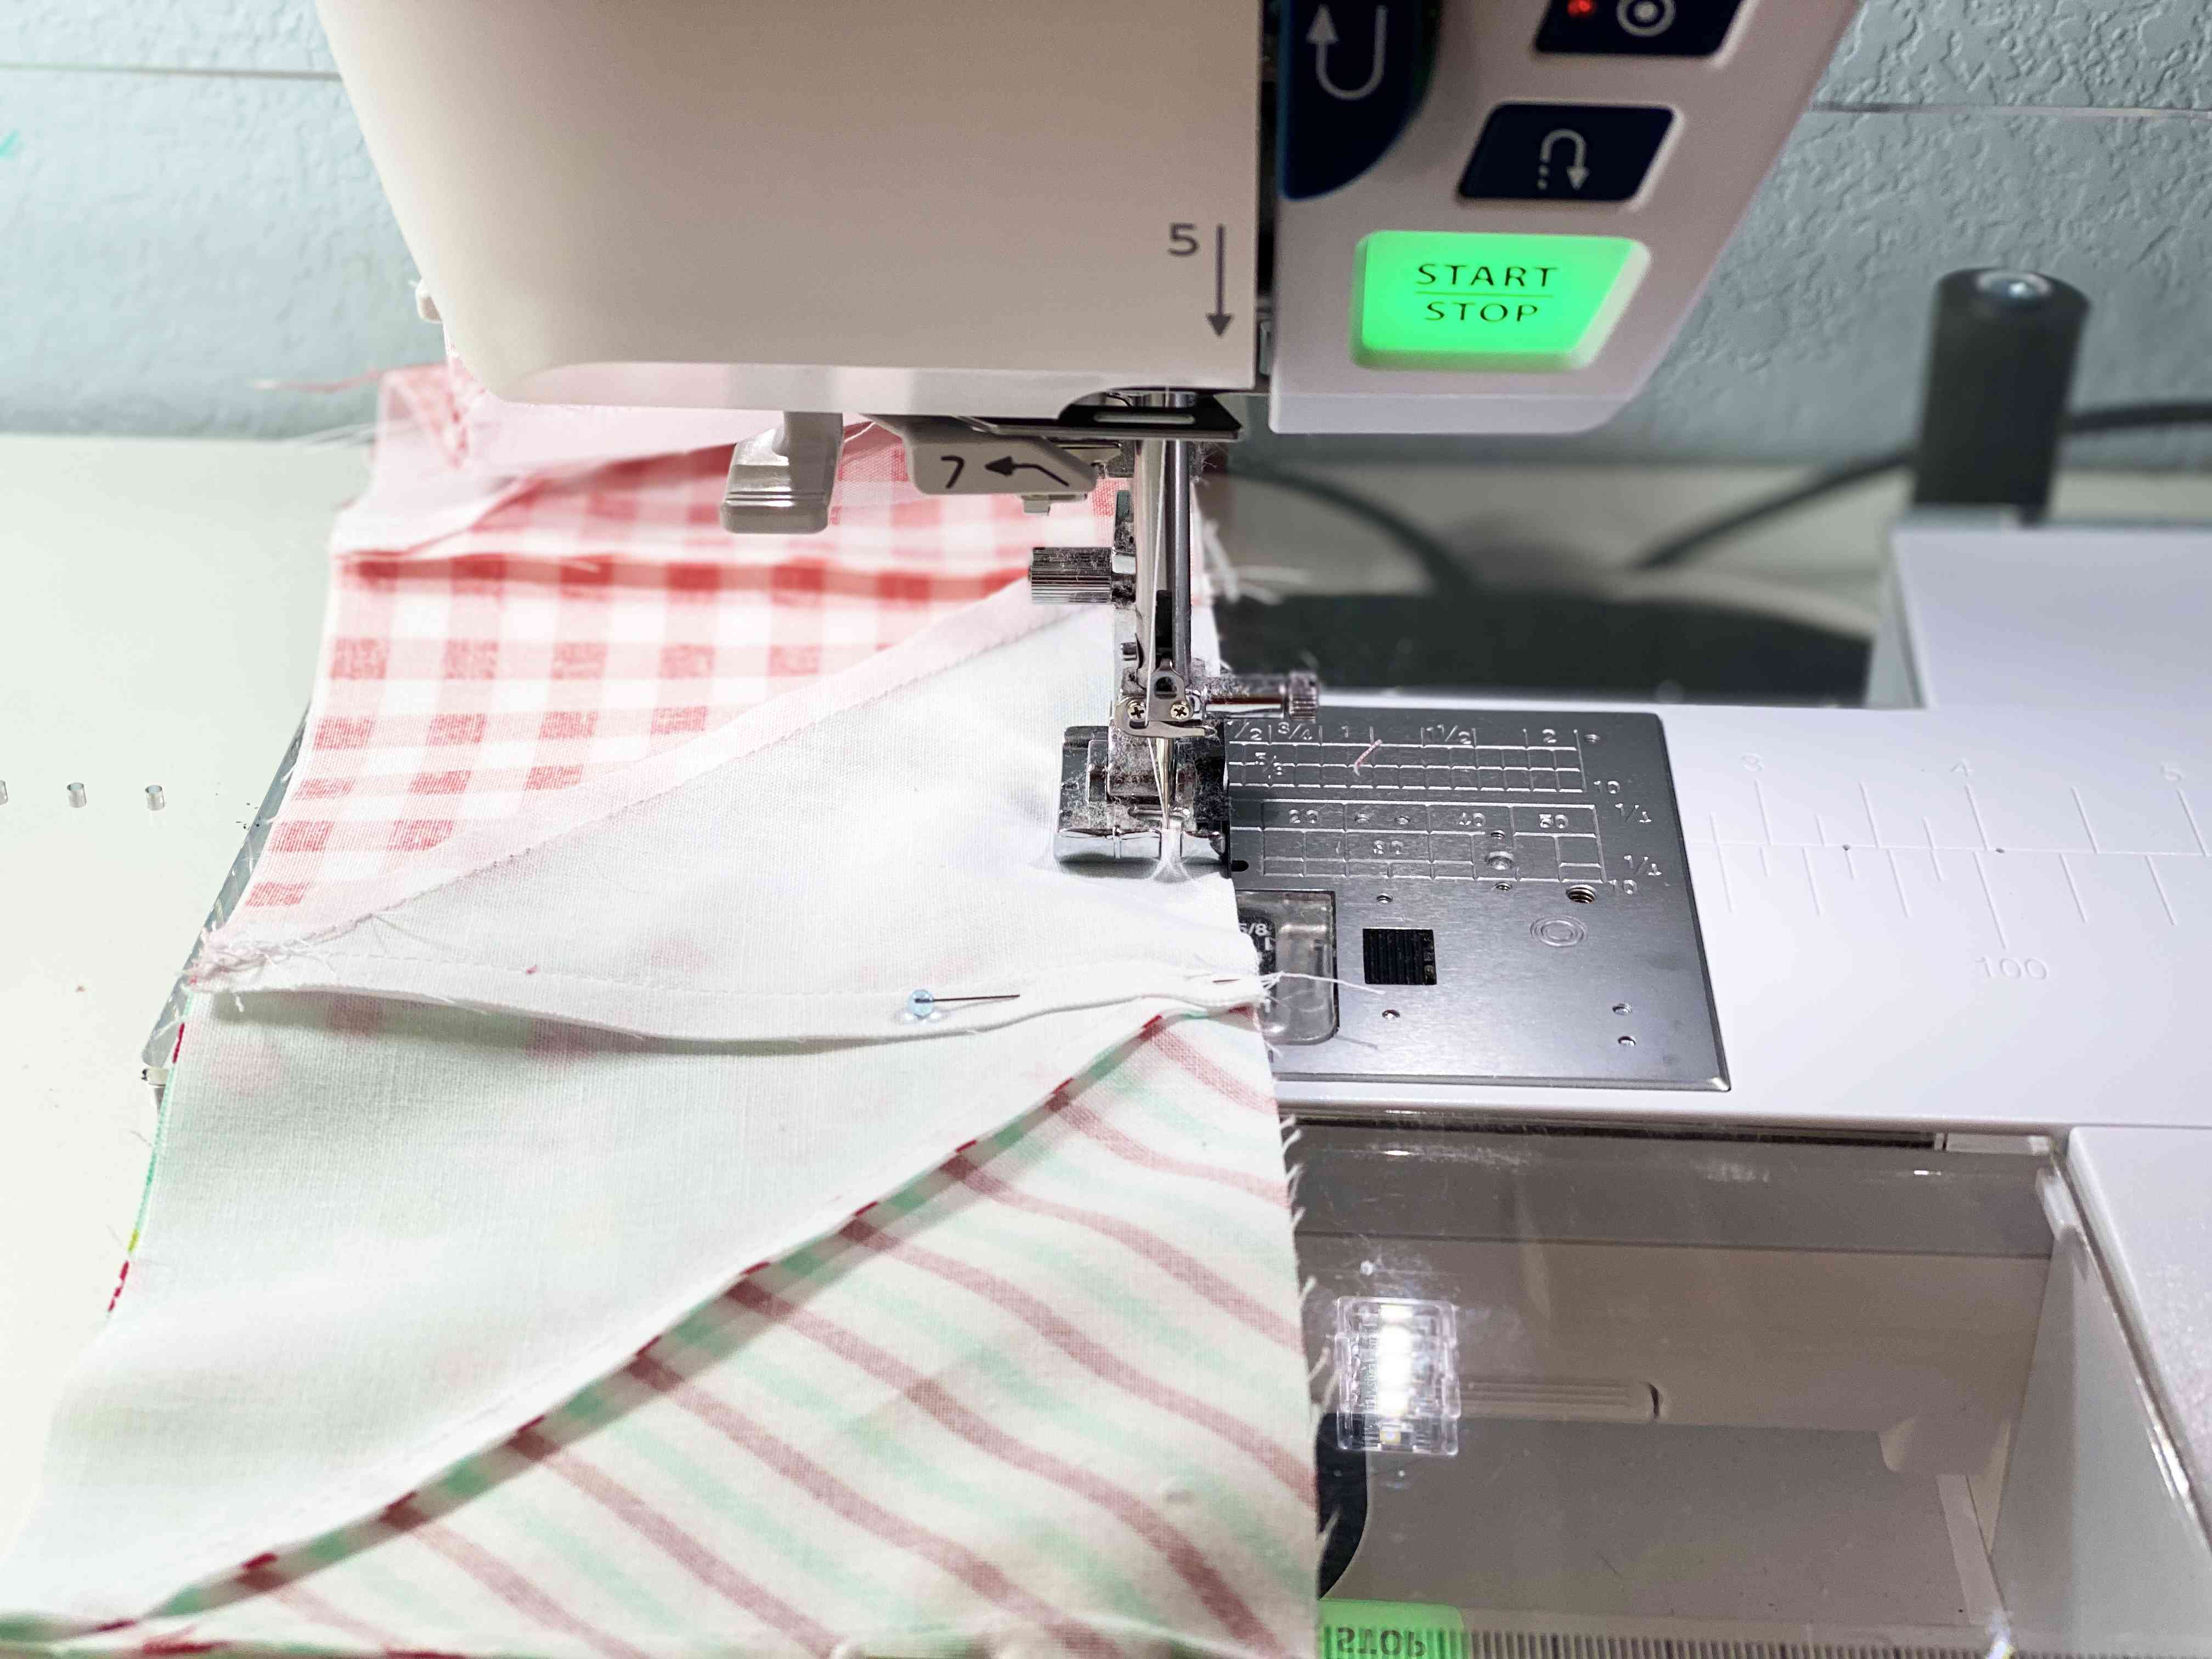 Using the sewing machine to sew together rows